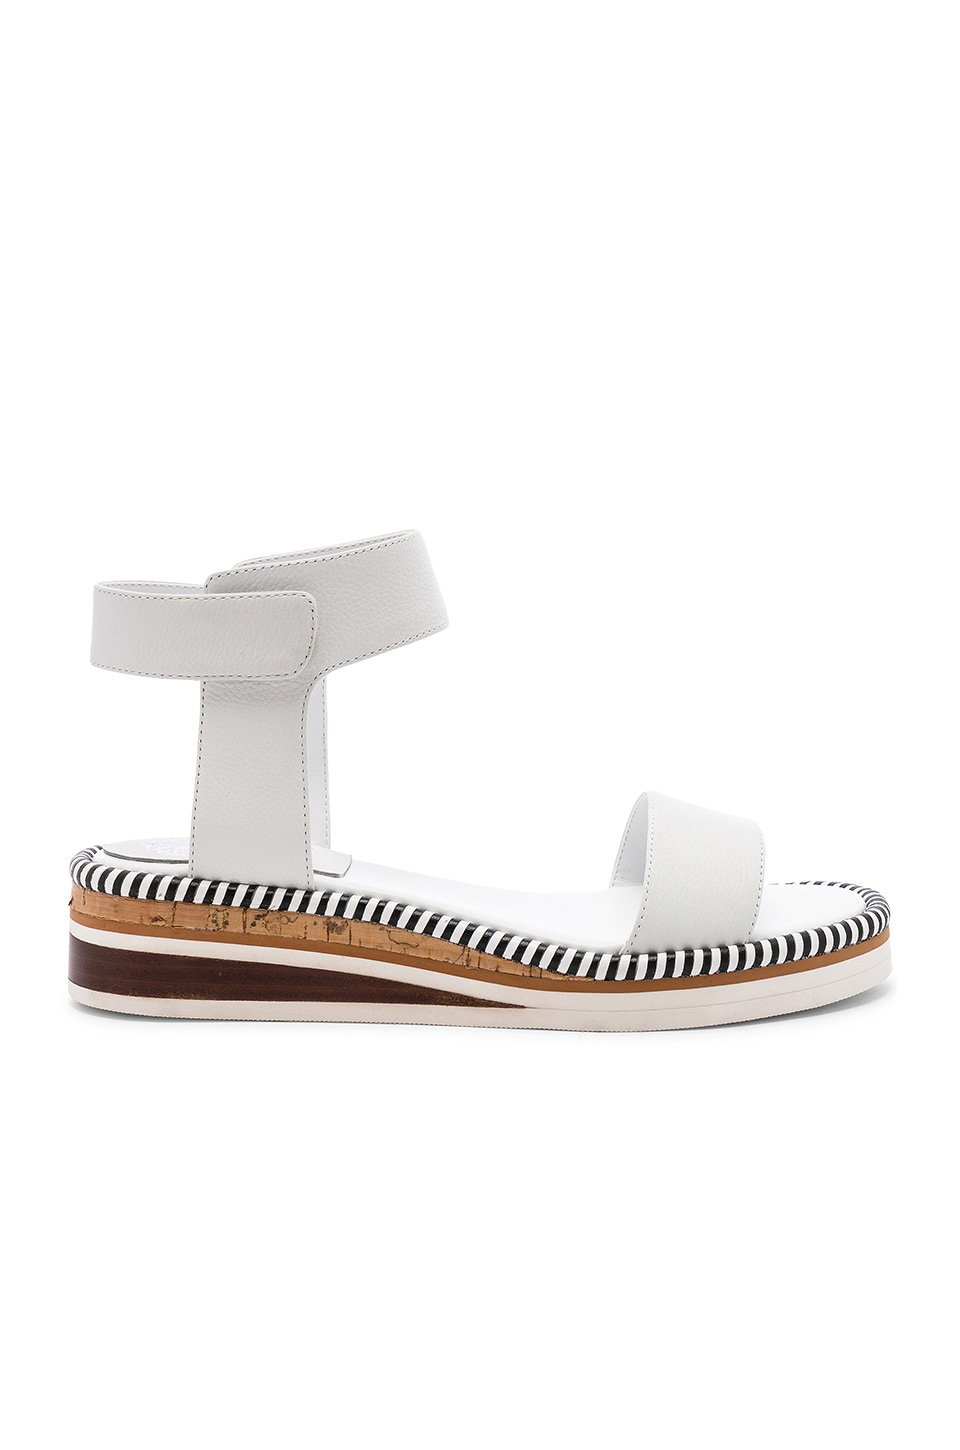 Vince Camuto Moirina Sandal in Pure